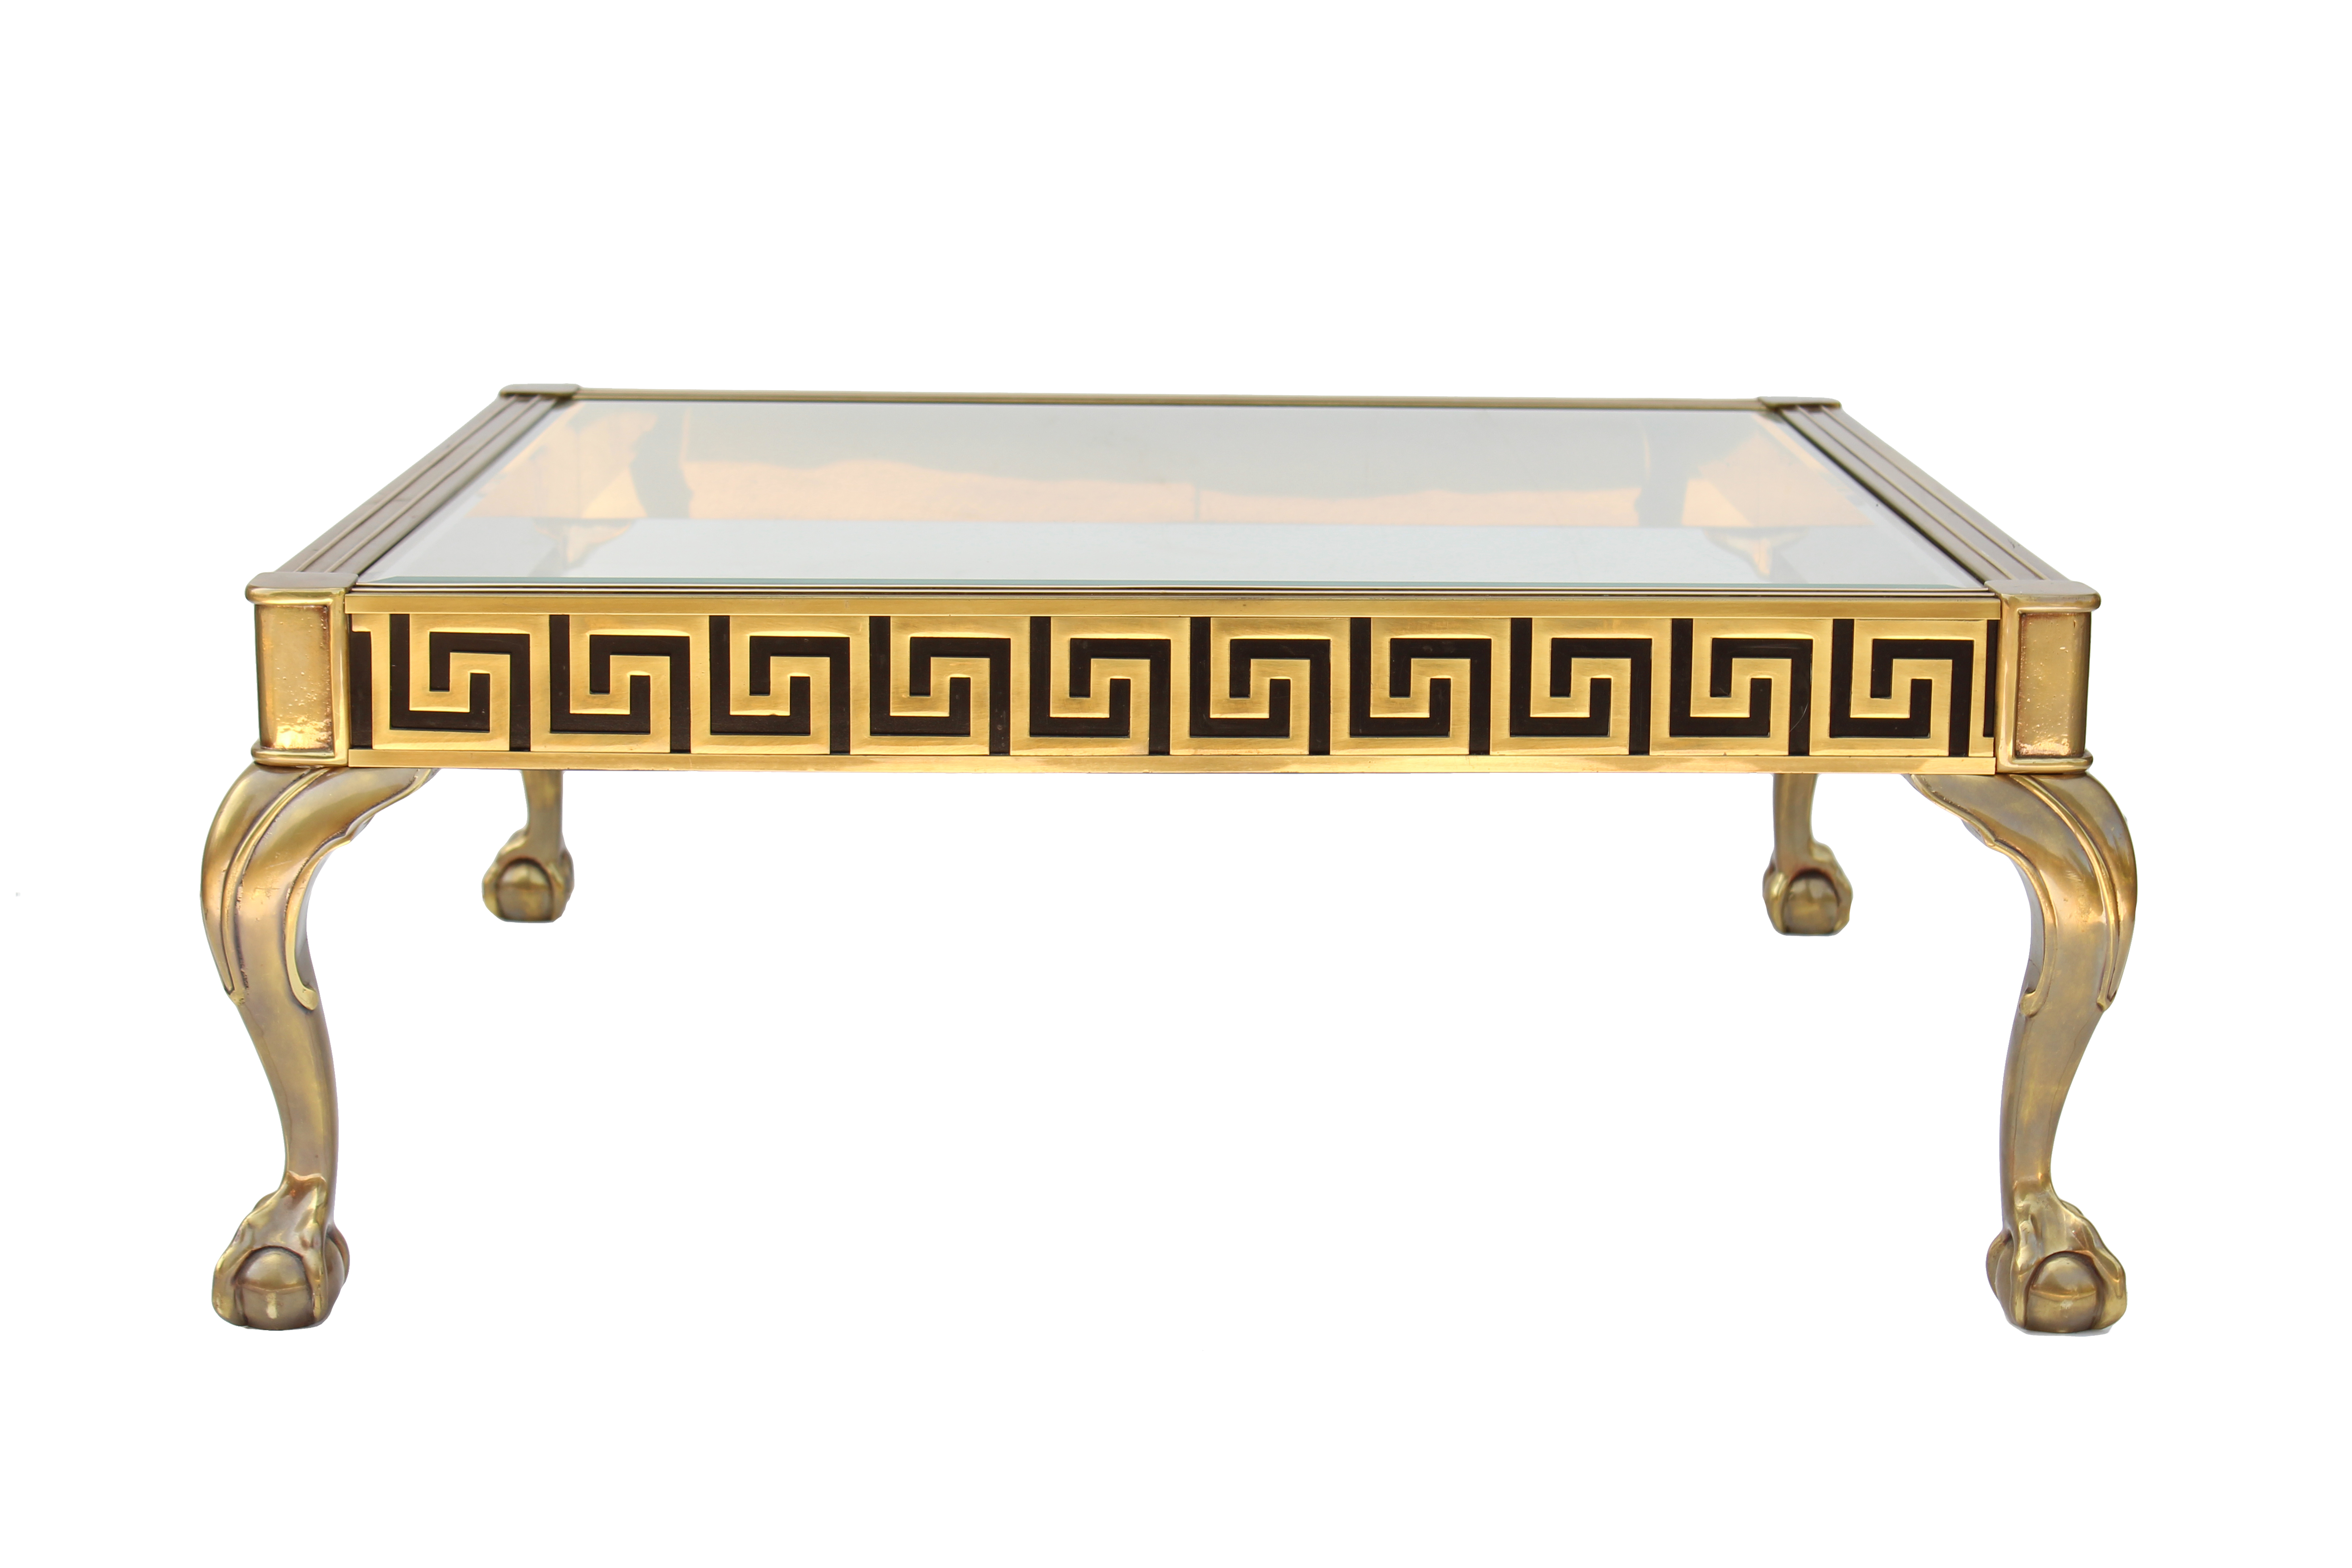 Greek coffee table images coffee table design ideas greek coffee table gallery coffee table design ideas greek coffee table images coffee table design ideas geotapseo Gallery